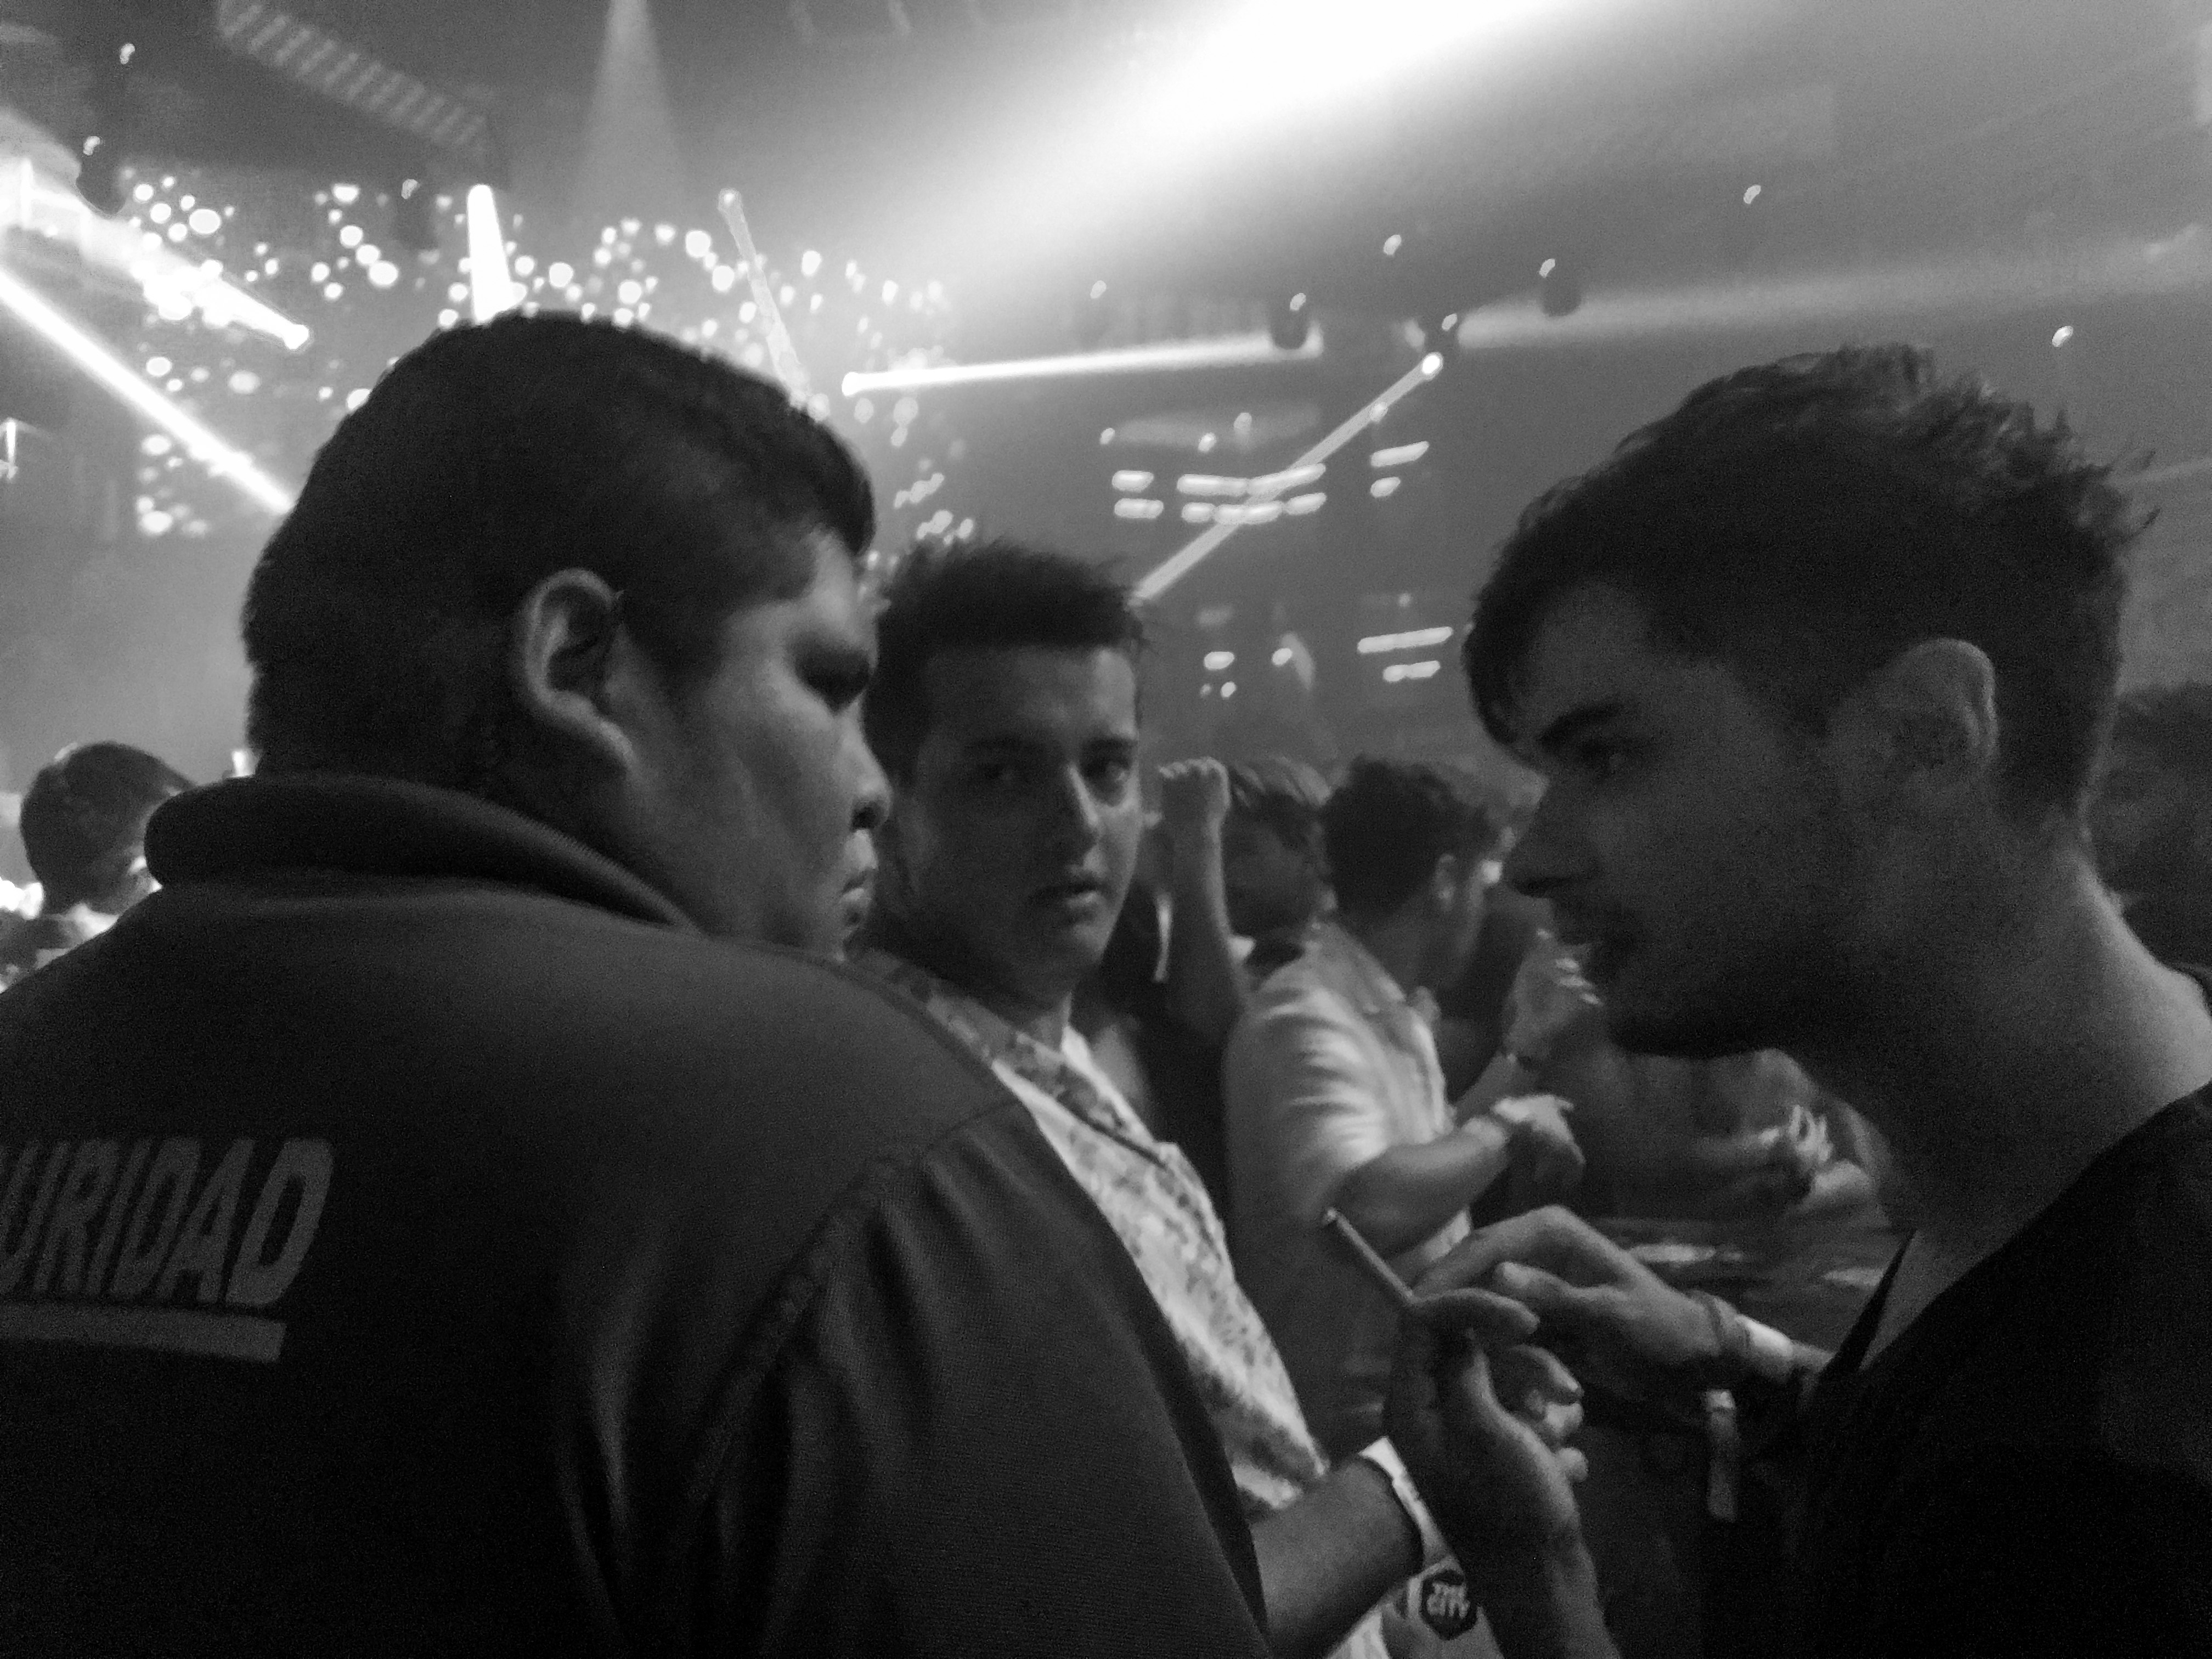 A large security guard confronts two college boys in a nightclub, one of whom is smoking a cigarette.